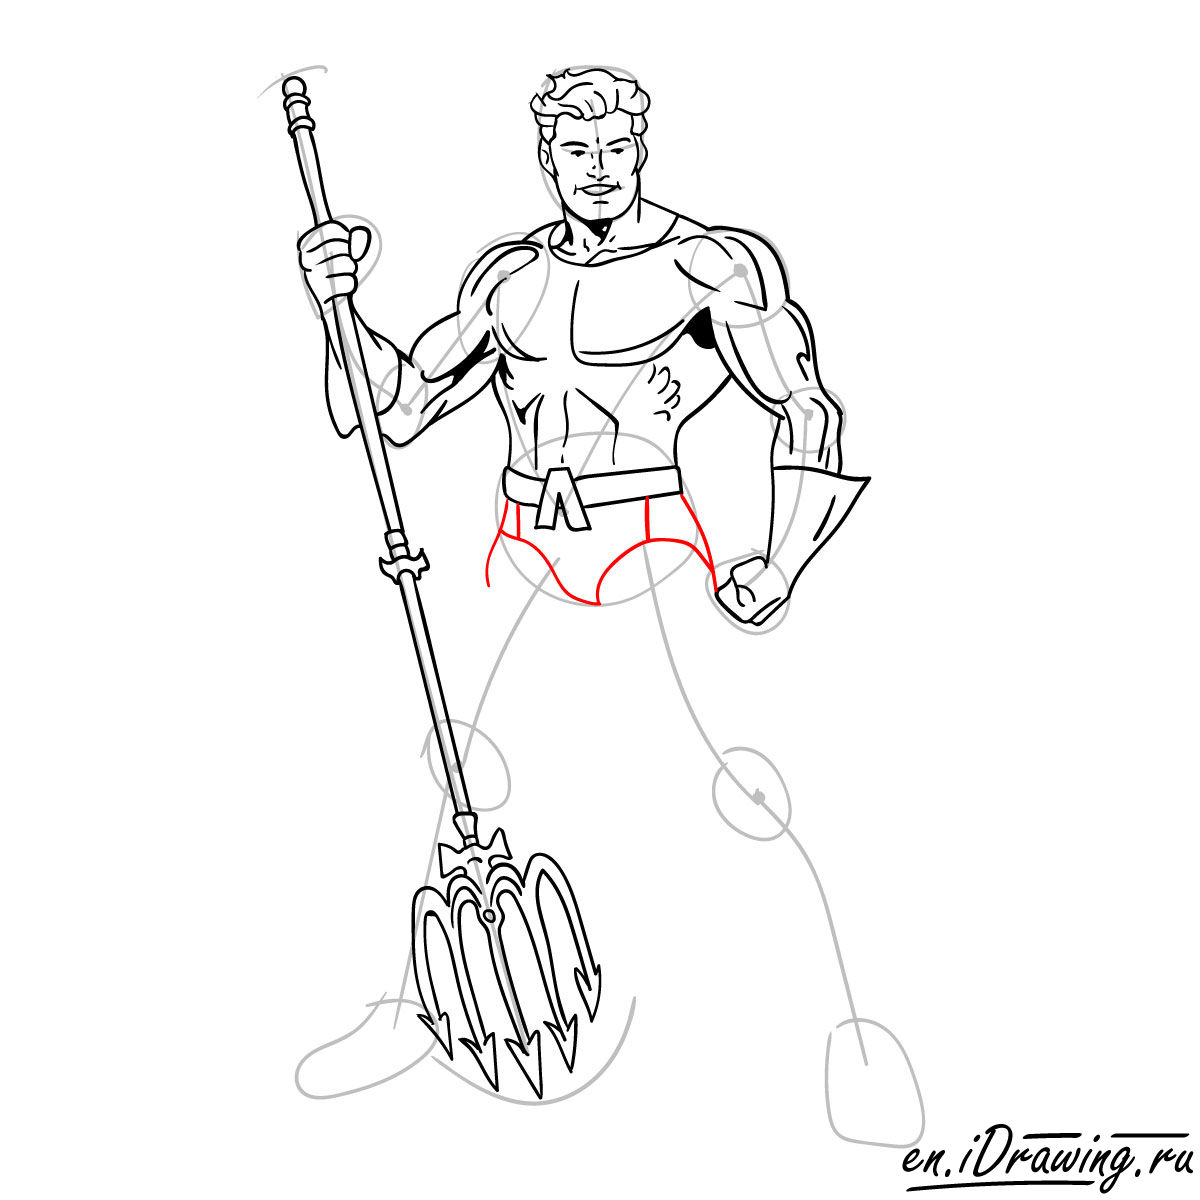 How to draw Aquaman from cartoons and comic books - step 13